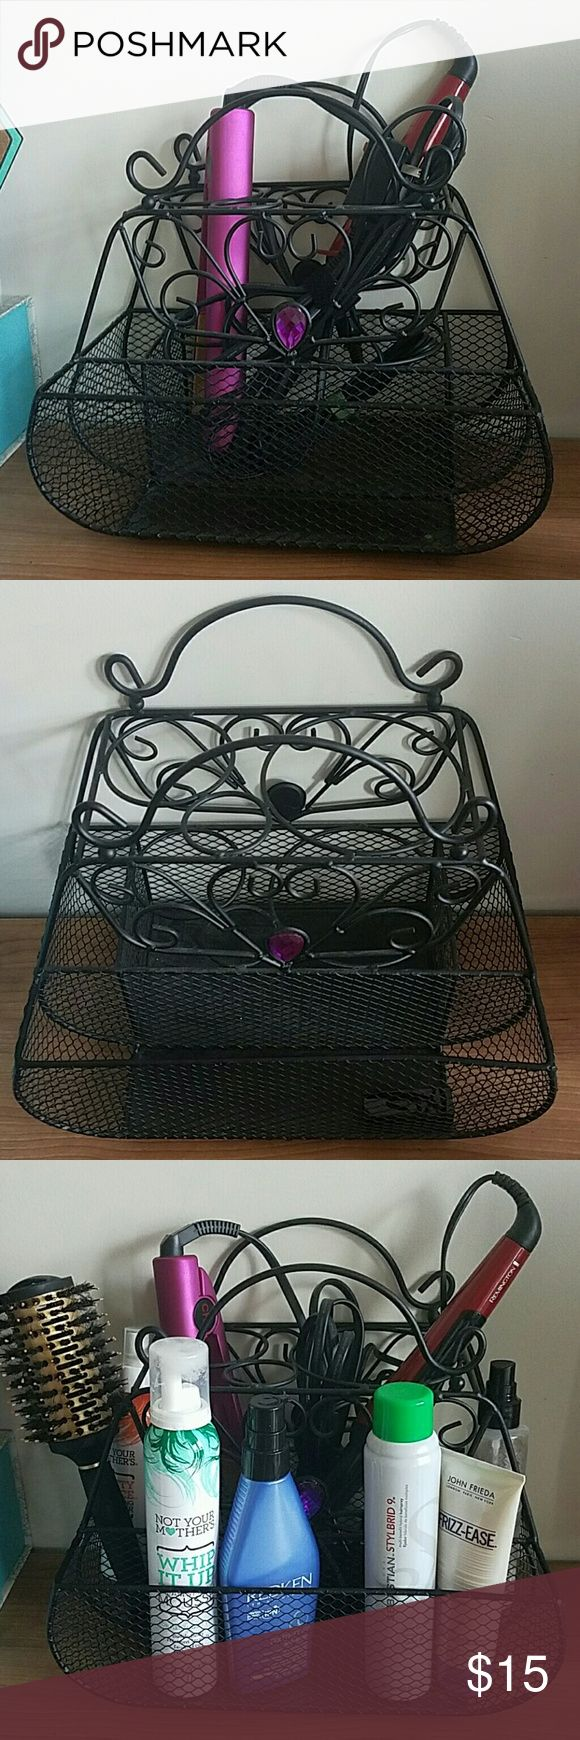 Vintage Hair Accessories Holder Such a cute way to keep all your hair accessories together and organized! It looks great either in the bedroom or in the bathroom Accessories